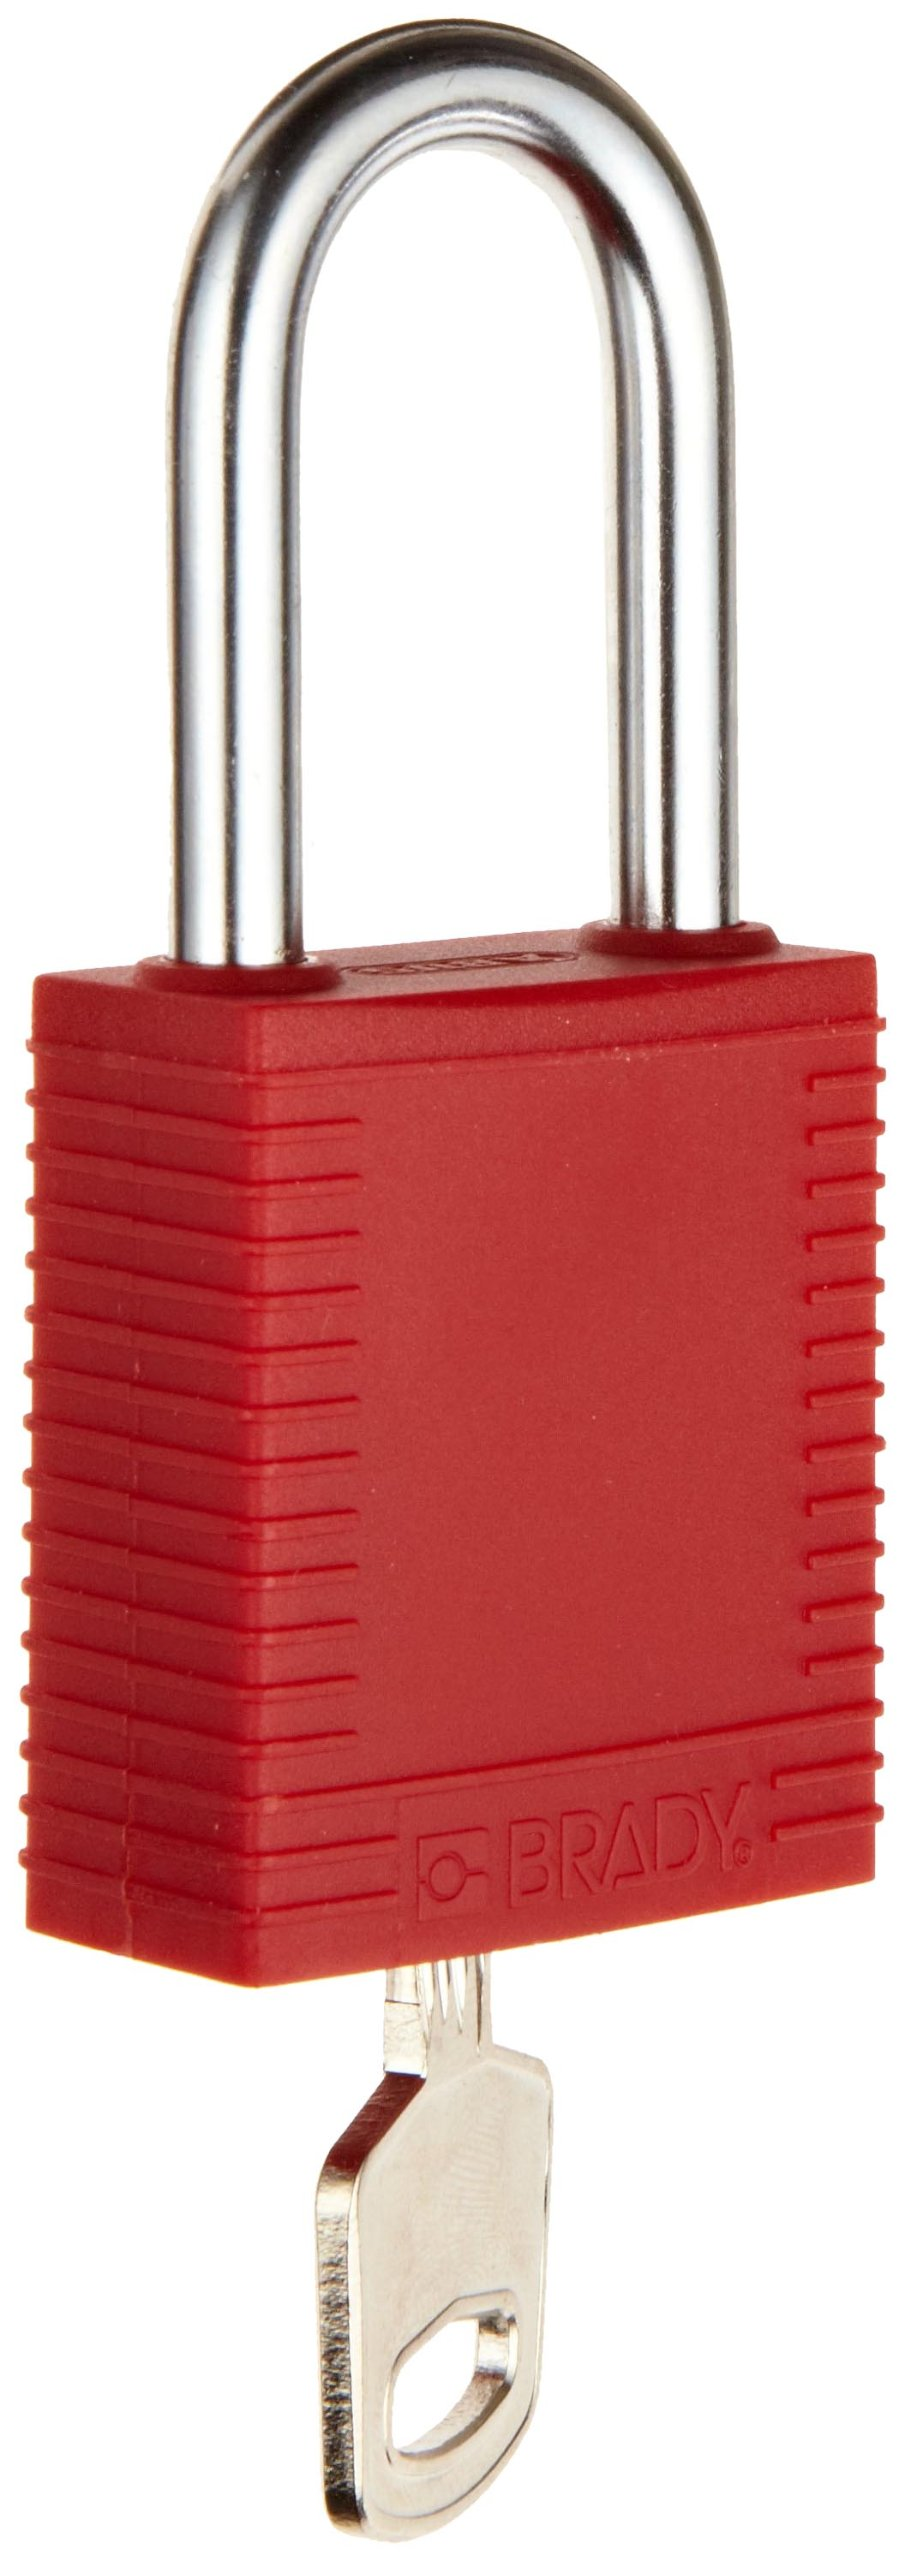 Brady Plastic Lockout/Tagout Padlock, Keyed Different, 1-3/4'' Body Length, 1-1/2'' Shackle Clearance, Red (Pack of 6)